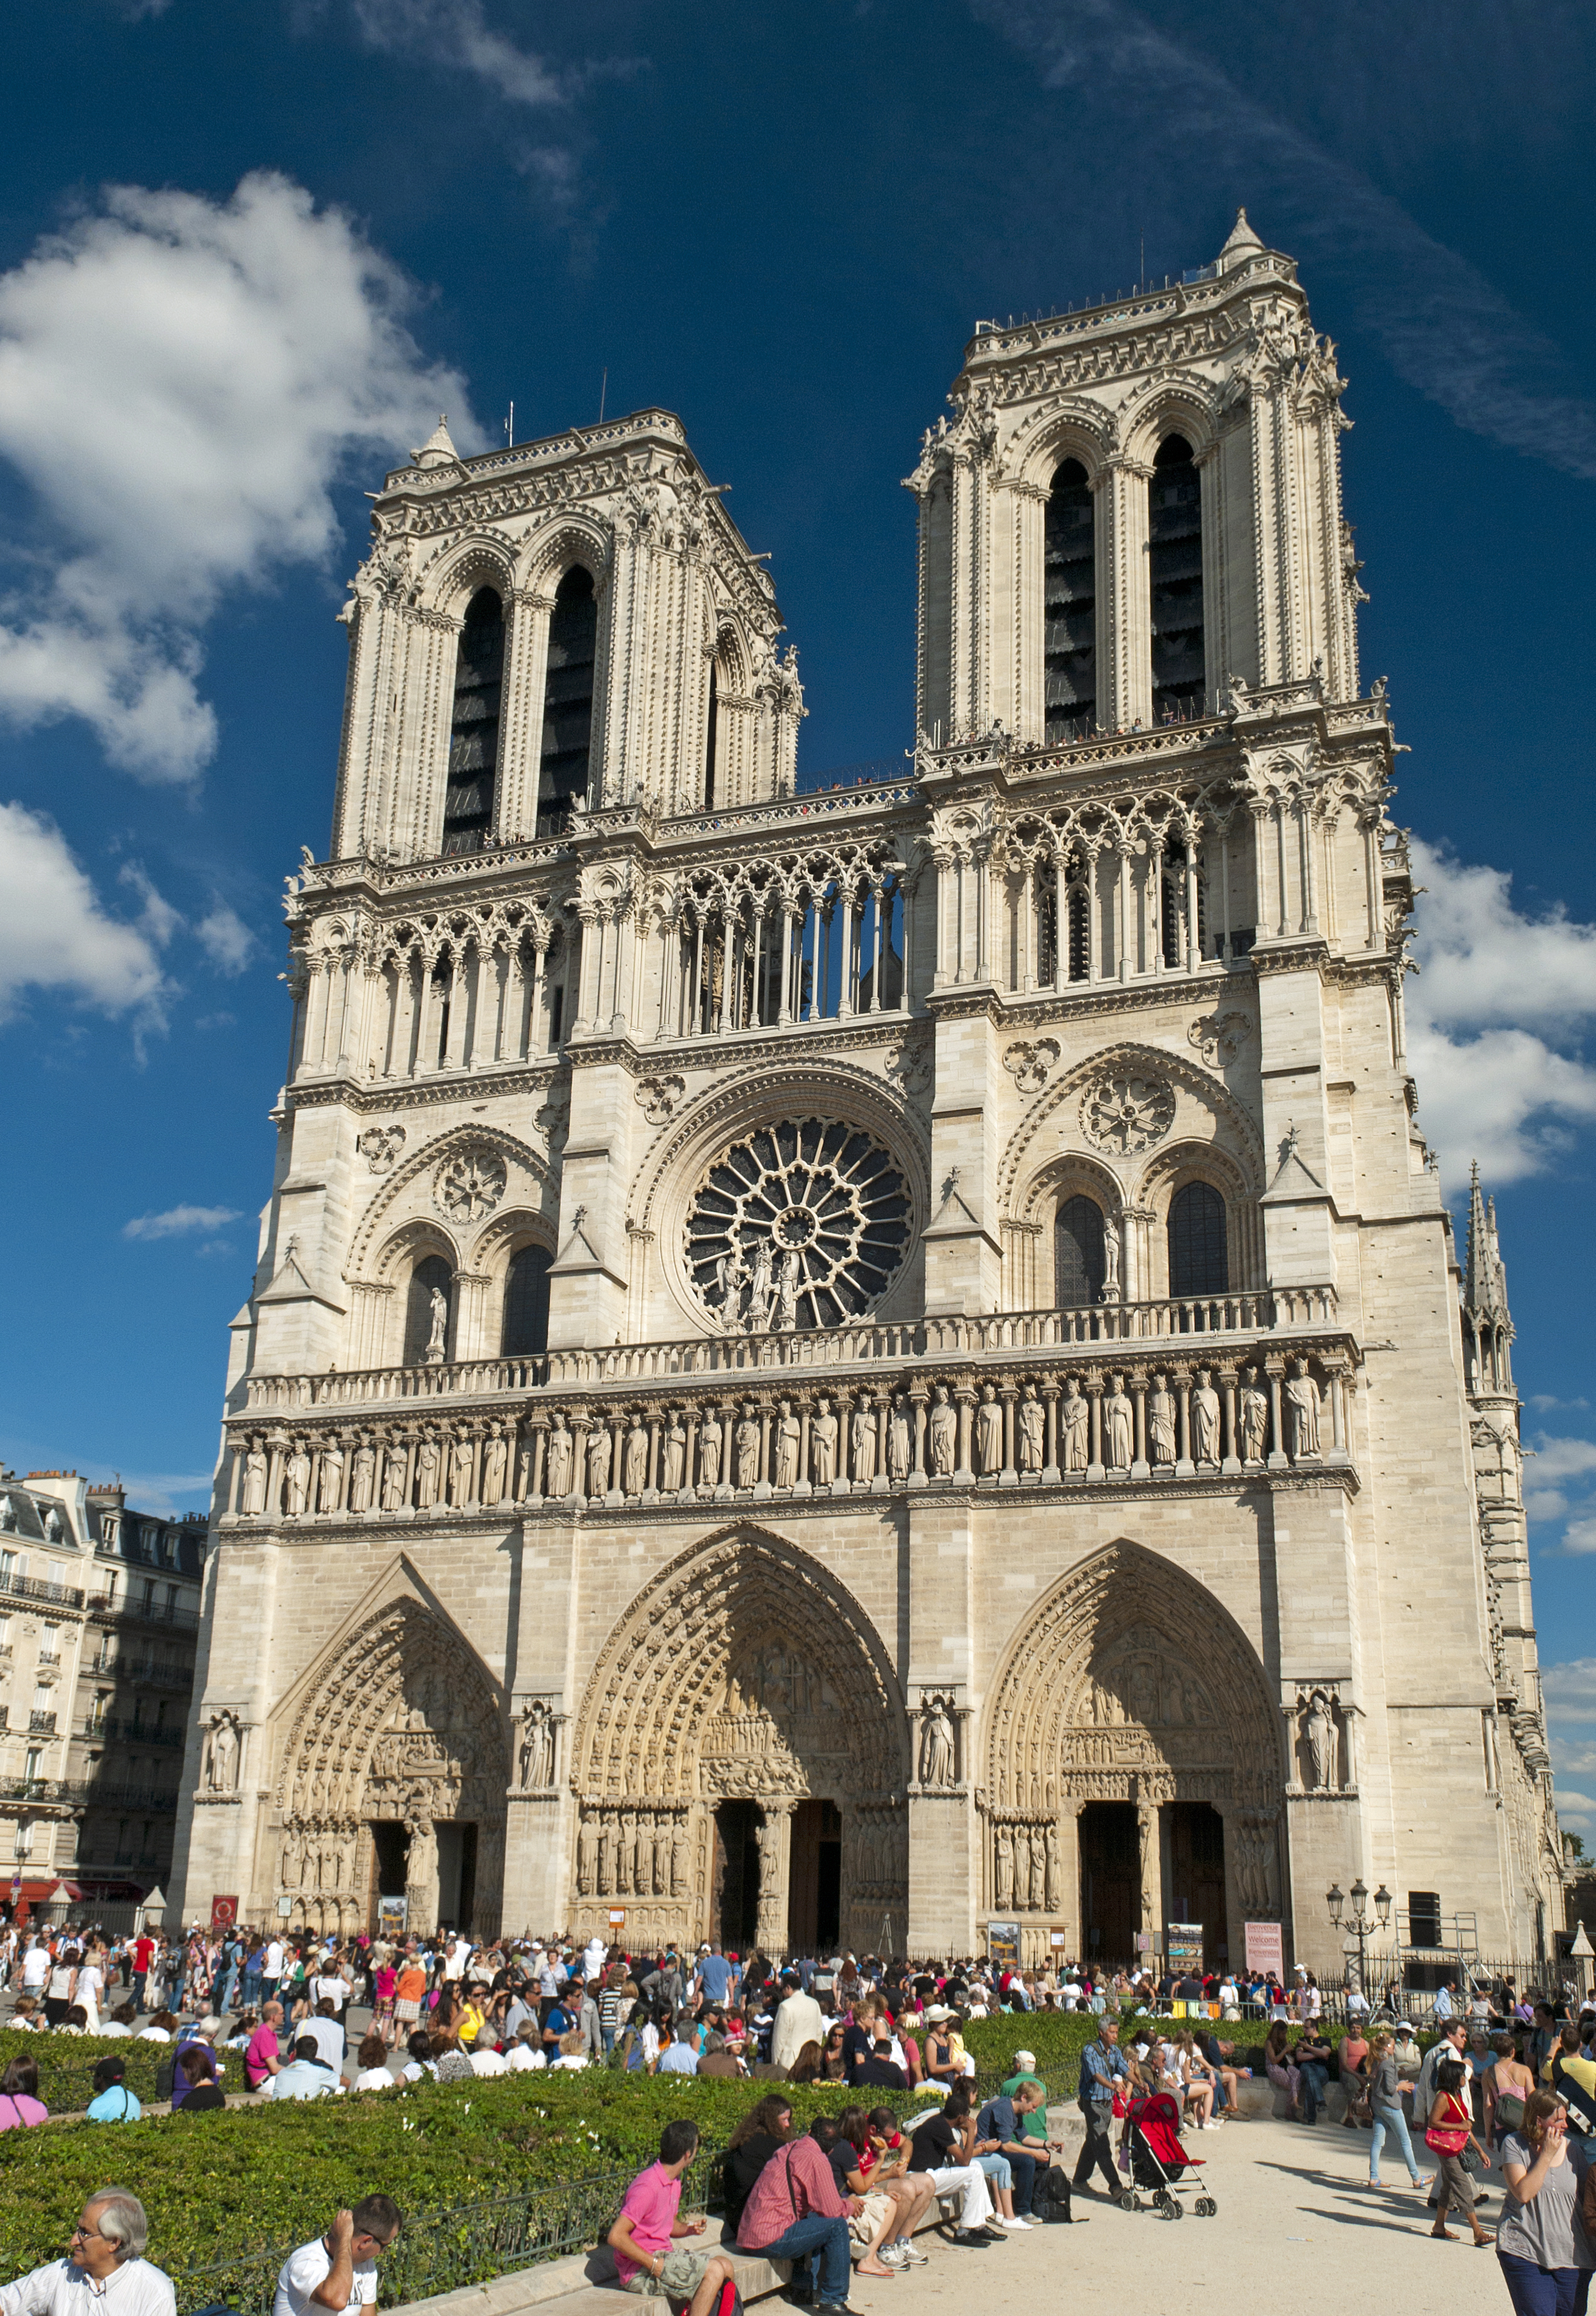 fichier notre dame de paris cath drale notre dame de paris 6094168584 jpg wikip dia. Black Bedroom Furniture Sets. Home Design Ideas